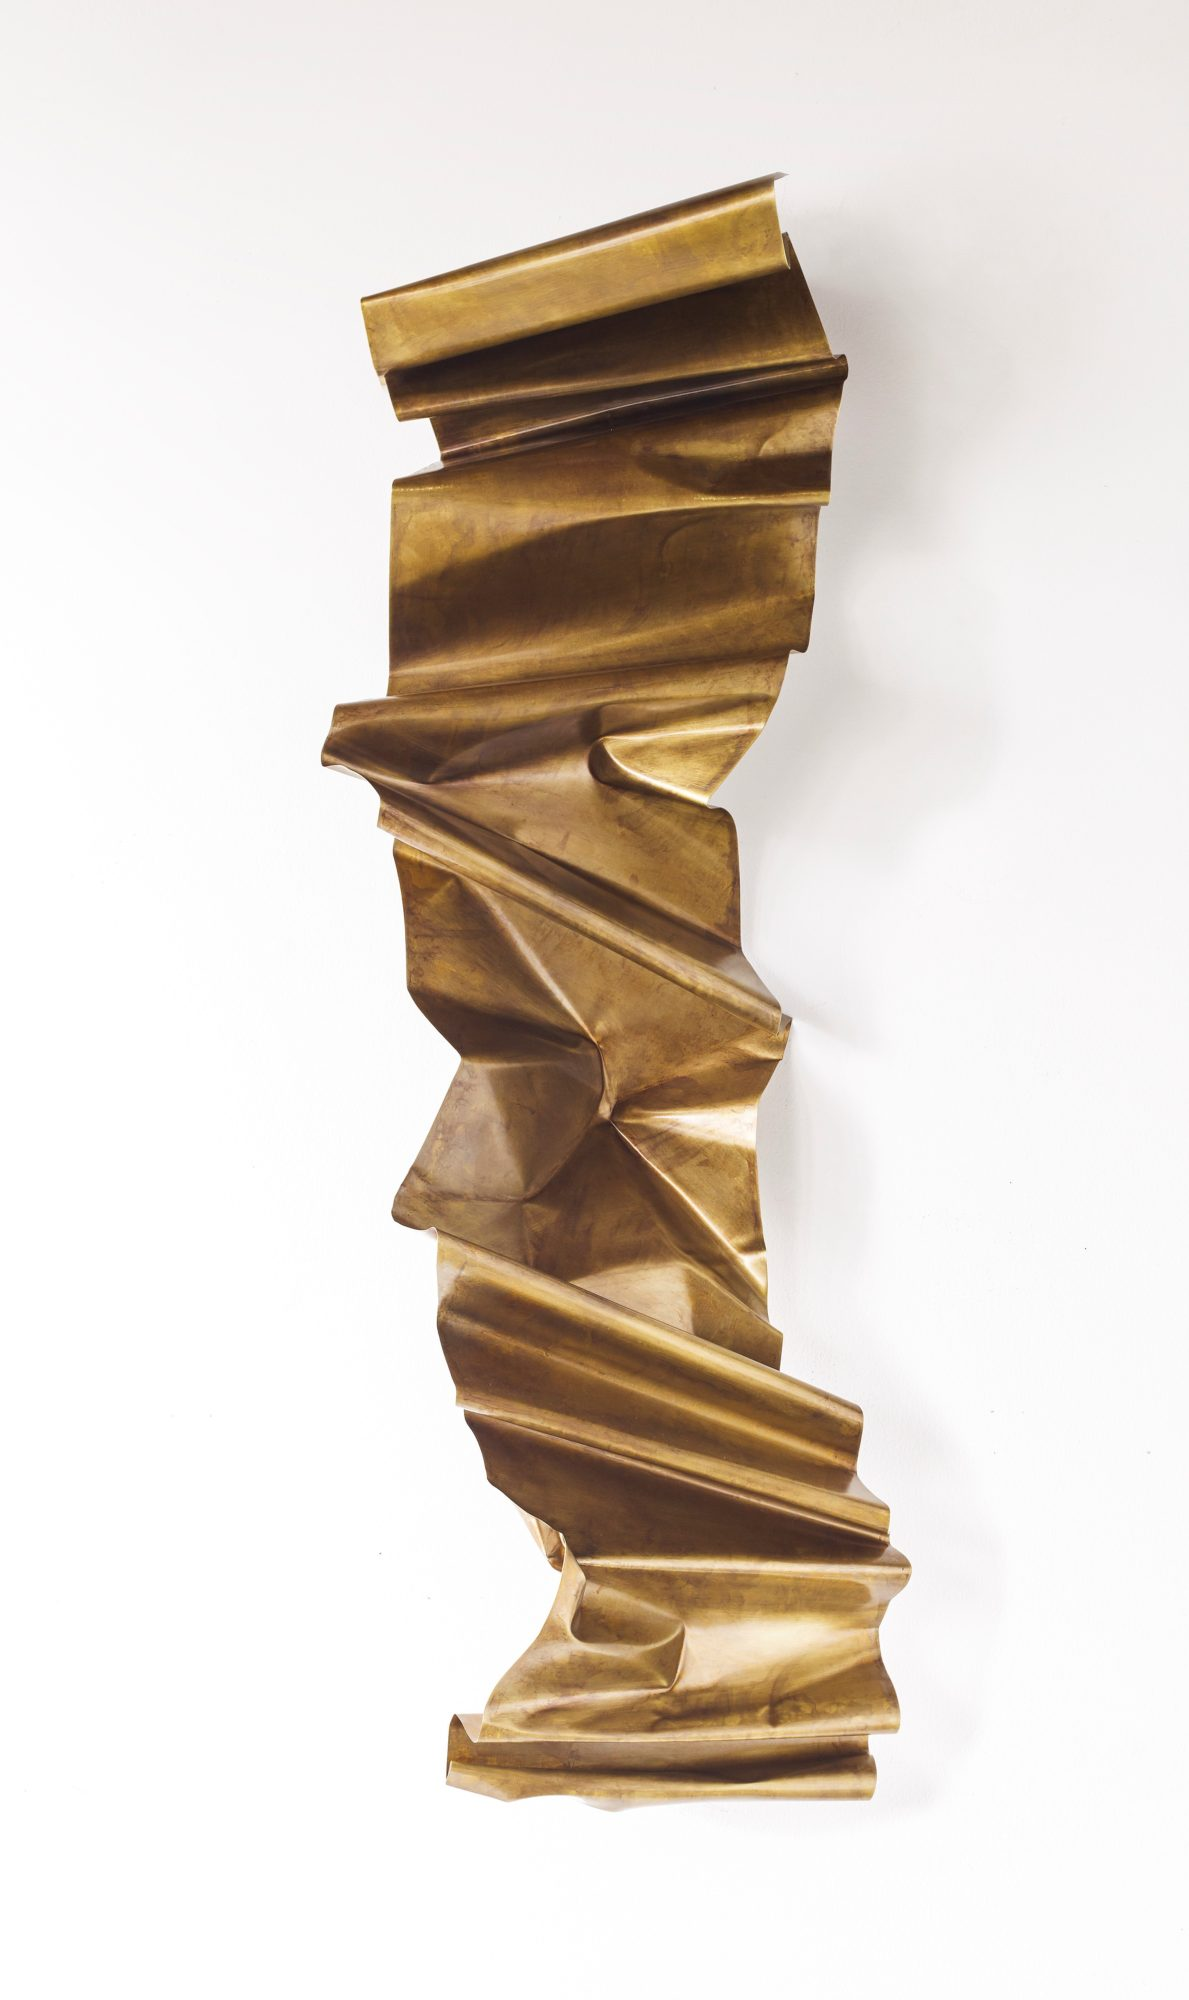 "Crunch Wall Series #8, approx 15"" x 50"" x 9""